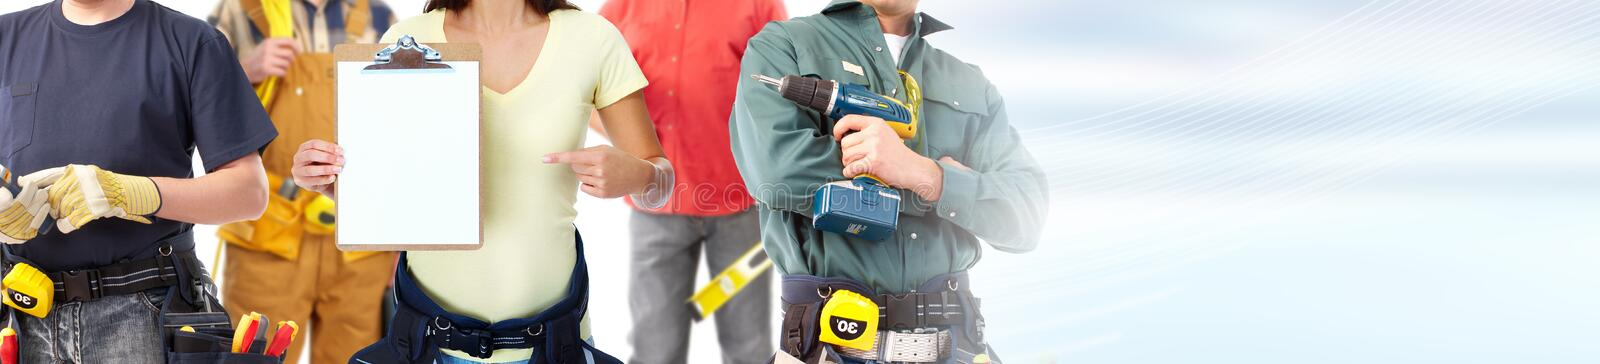 Construction workers group stock image